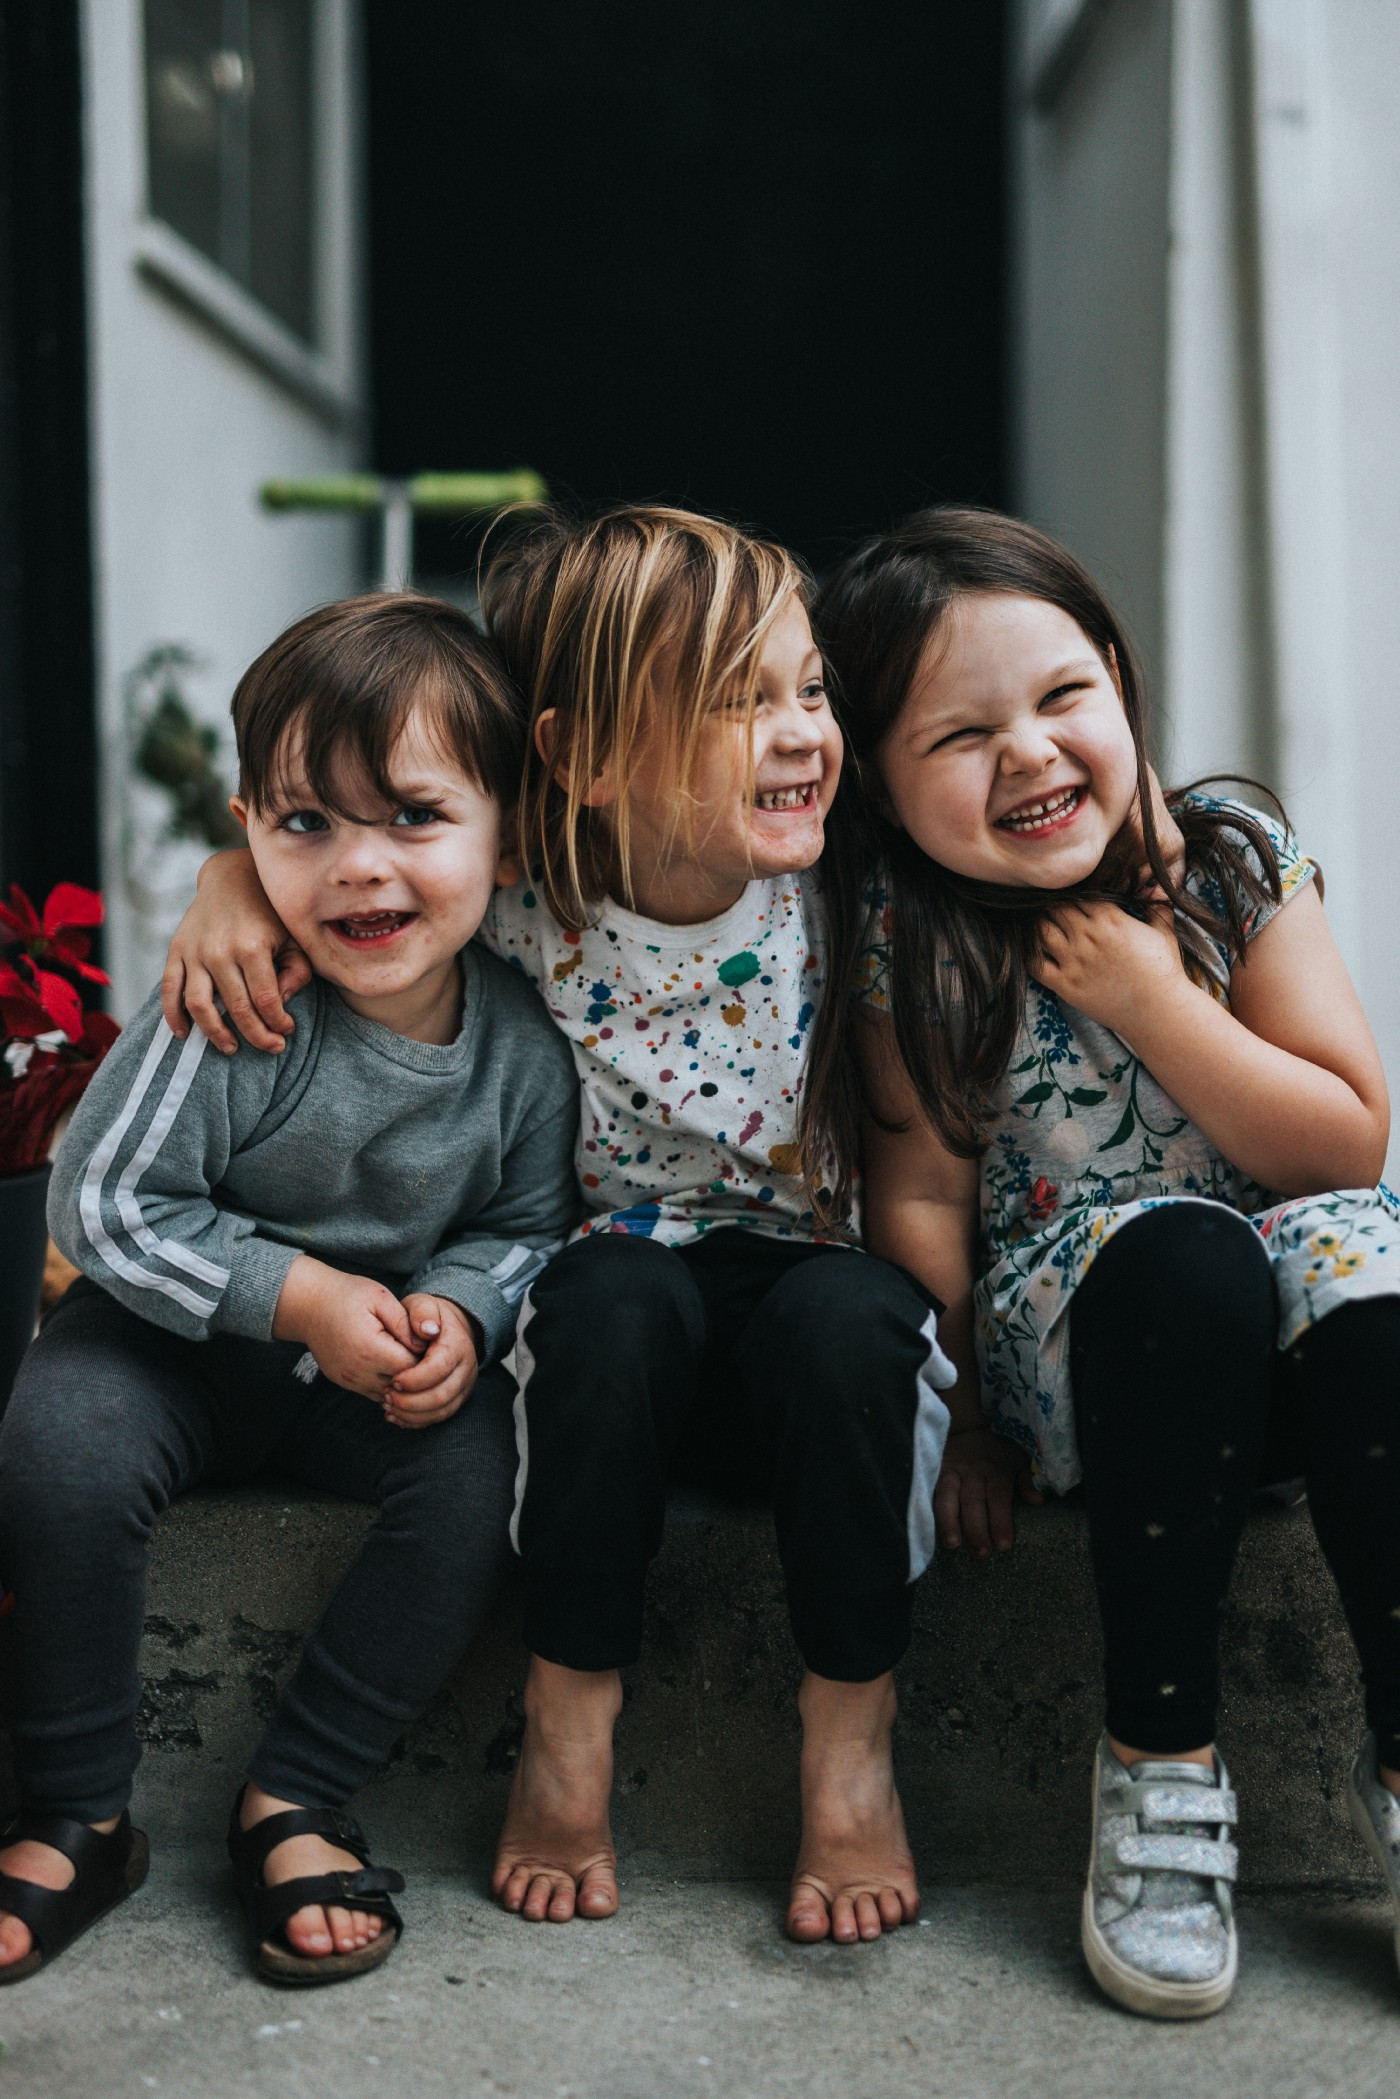 Three children smiling and hugging: two girls and a boy.